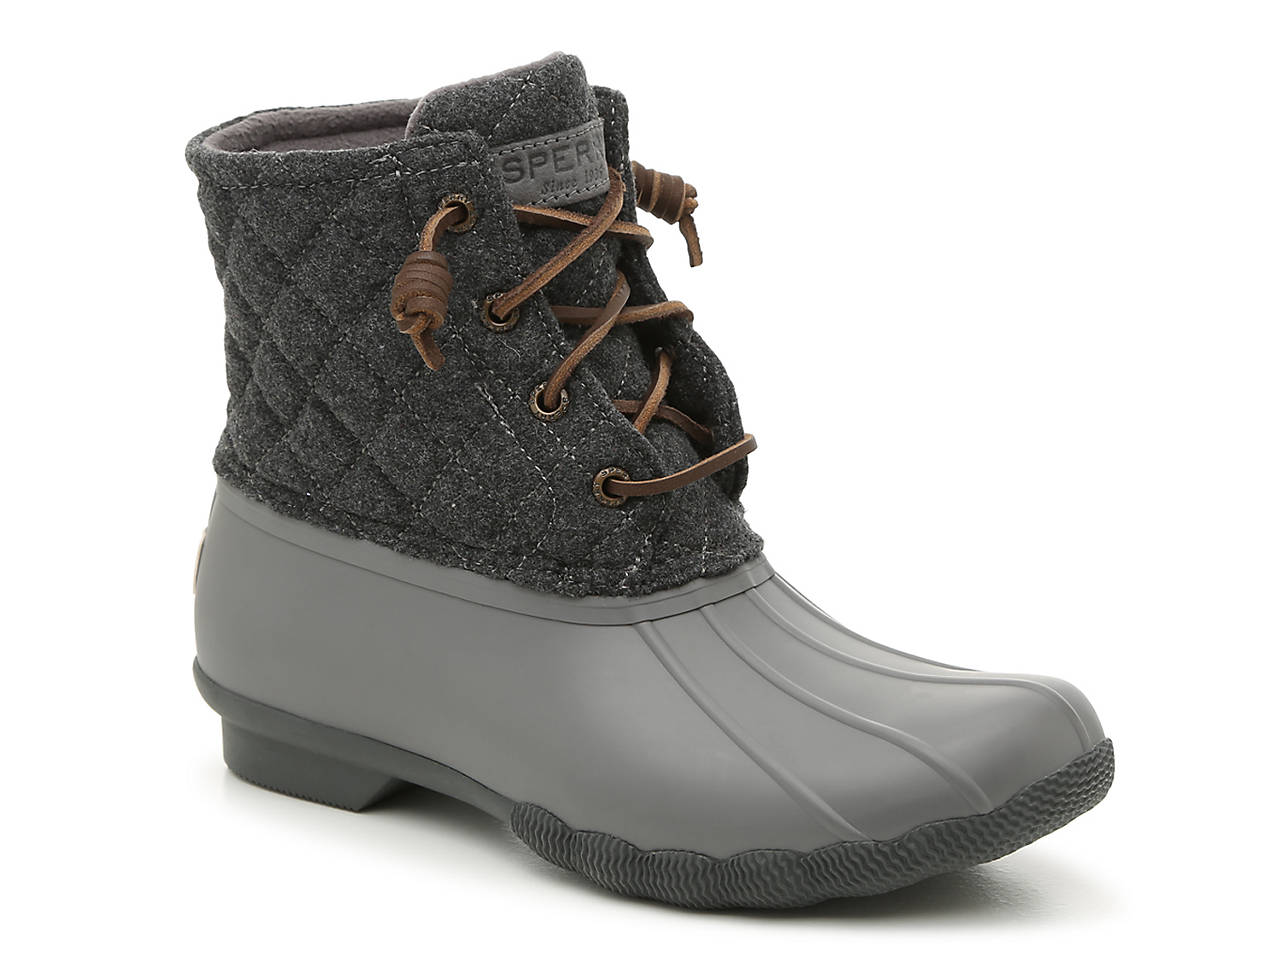 ba7b49abfb8d Sperry Top-Sider Saltwater Duck Boot Women s Shoes